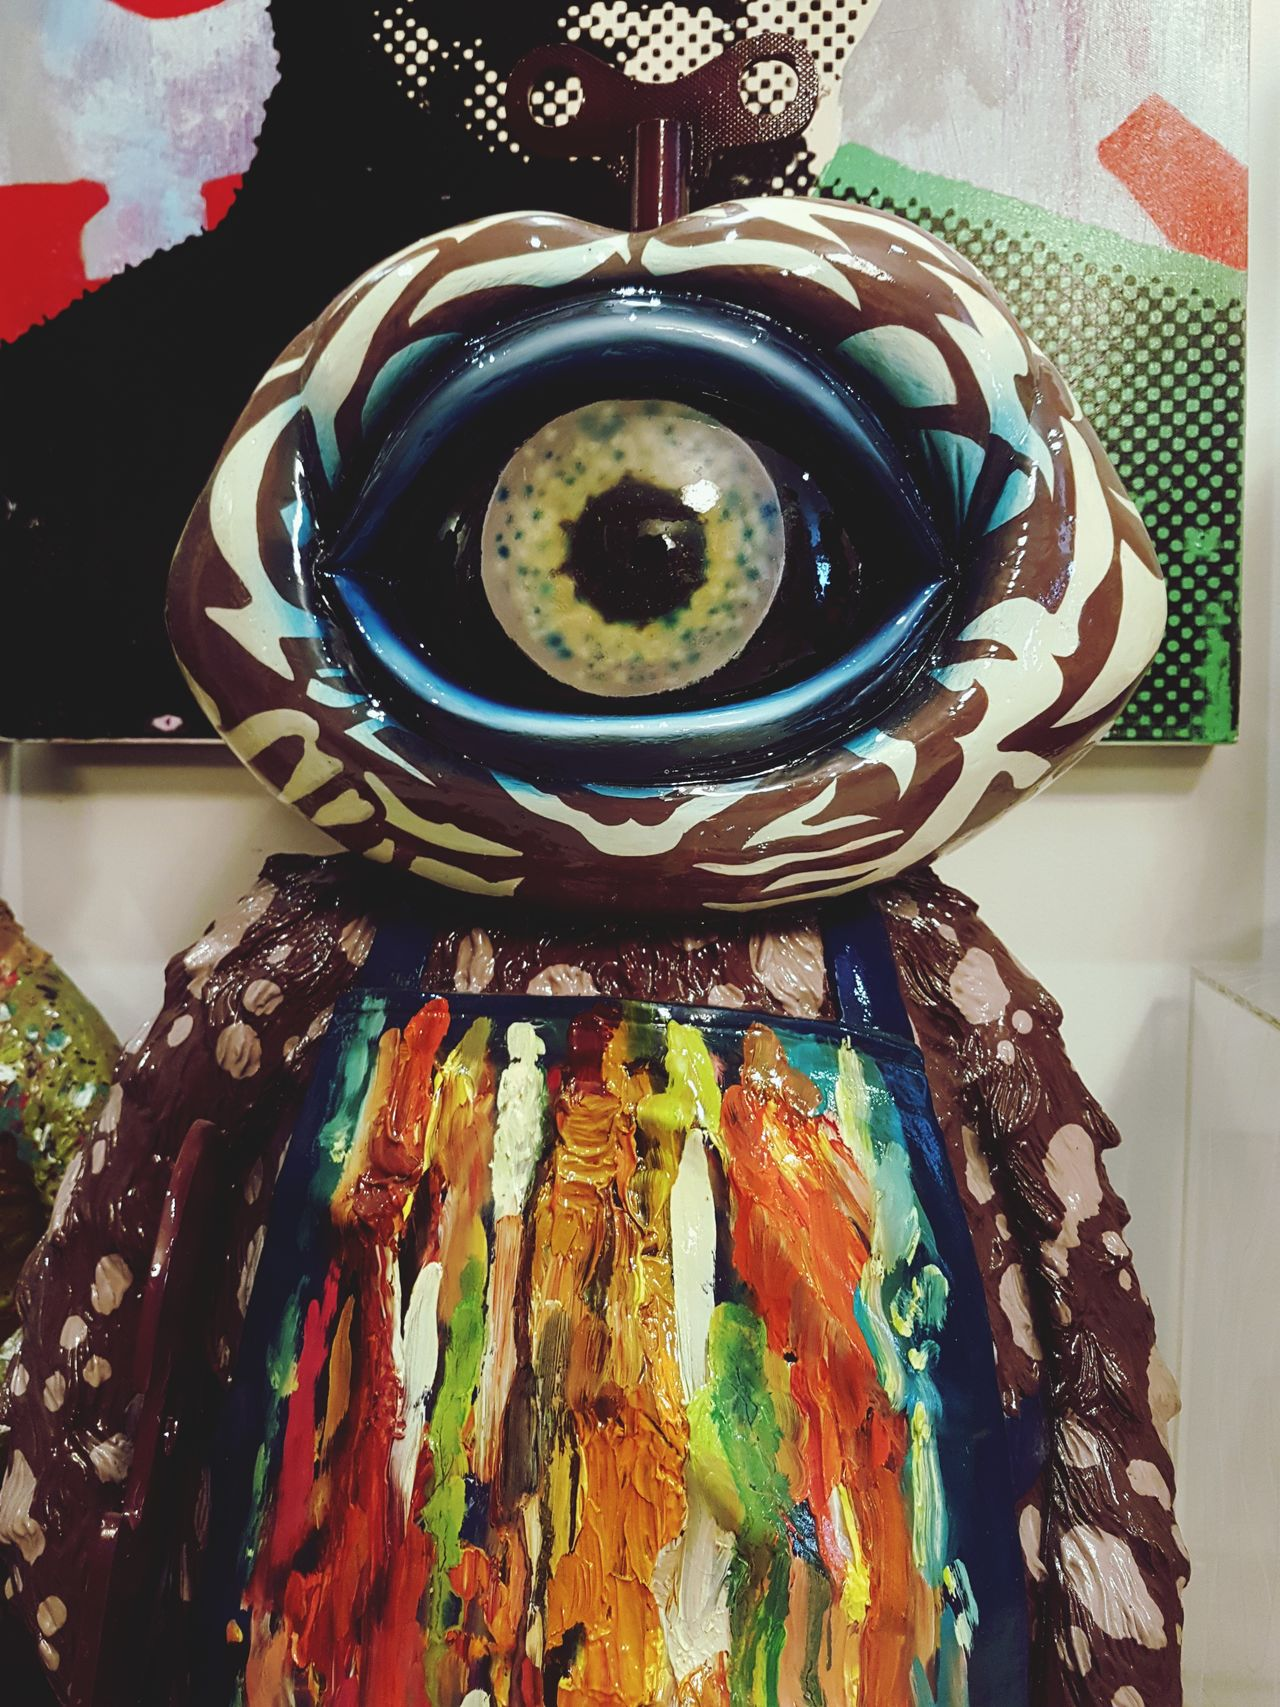 The Eye Eye One Eyed Monsta One Eye Art Sculpture Sculptures Passion Photo Monster Alien Toy Collection